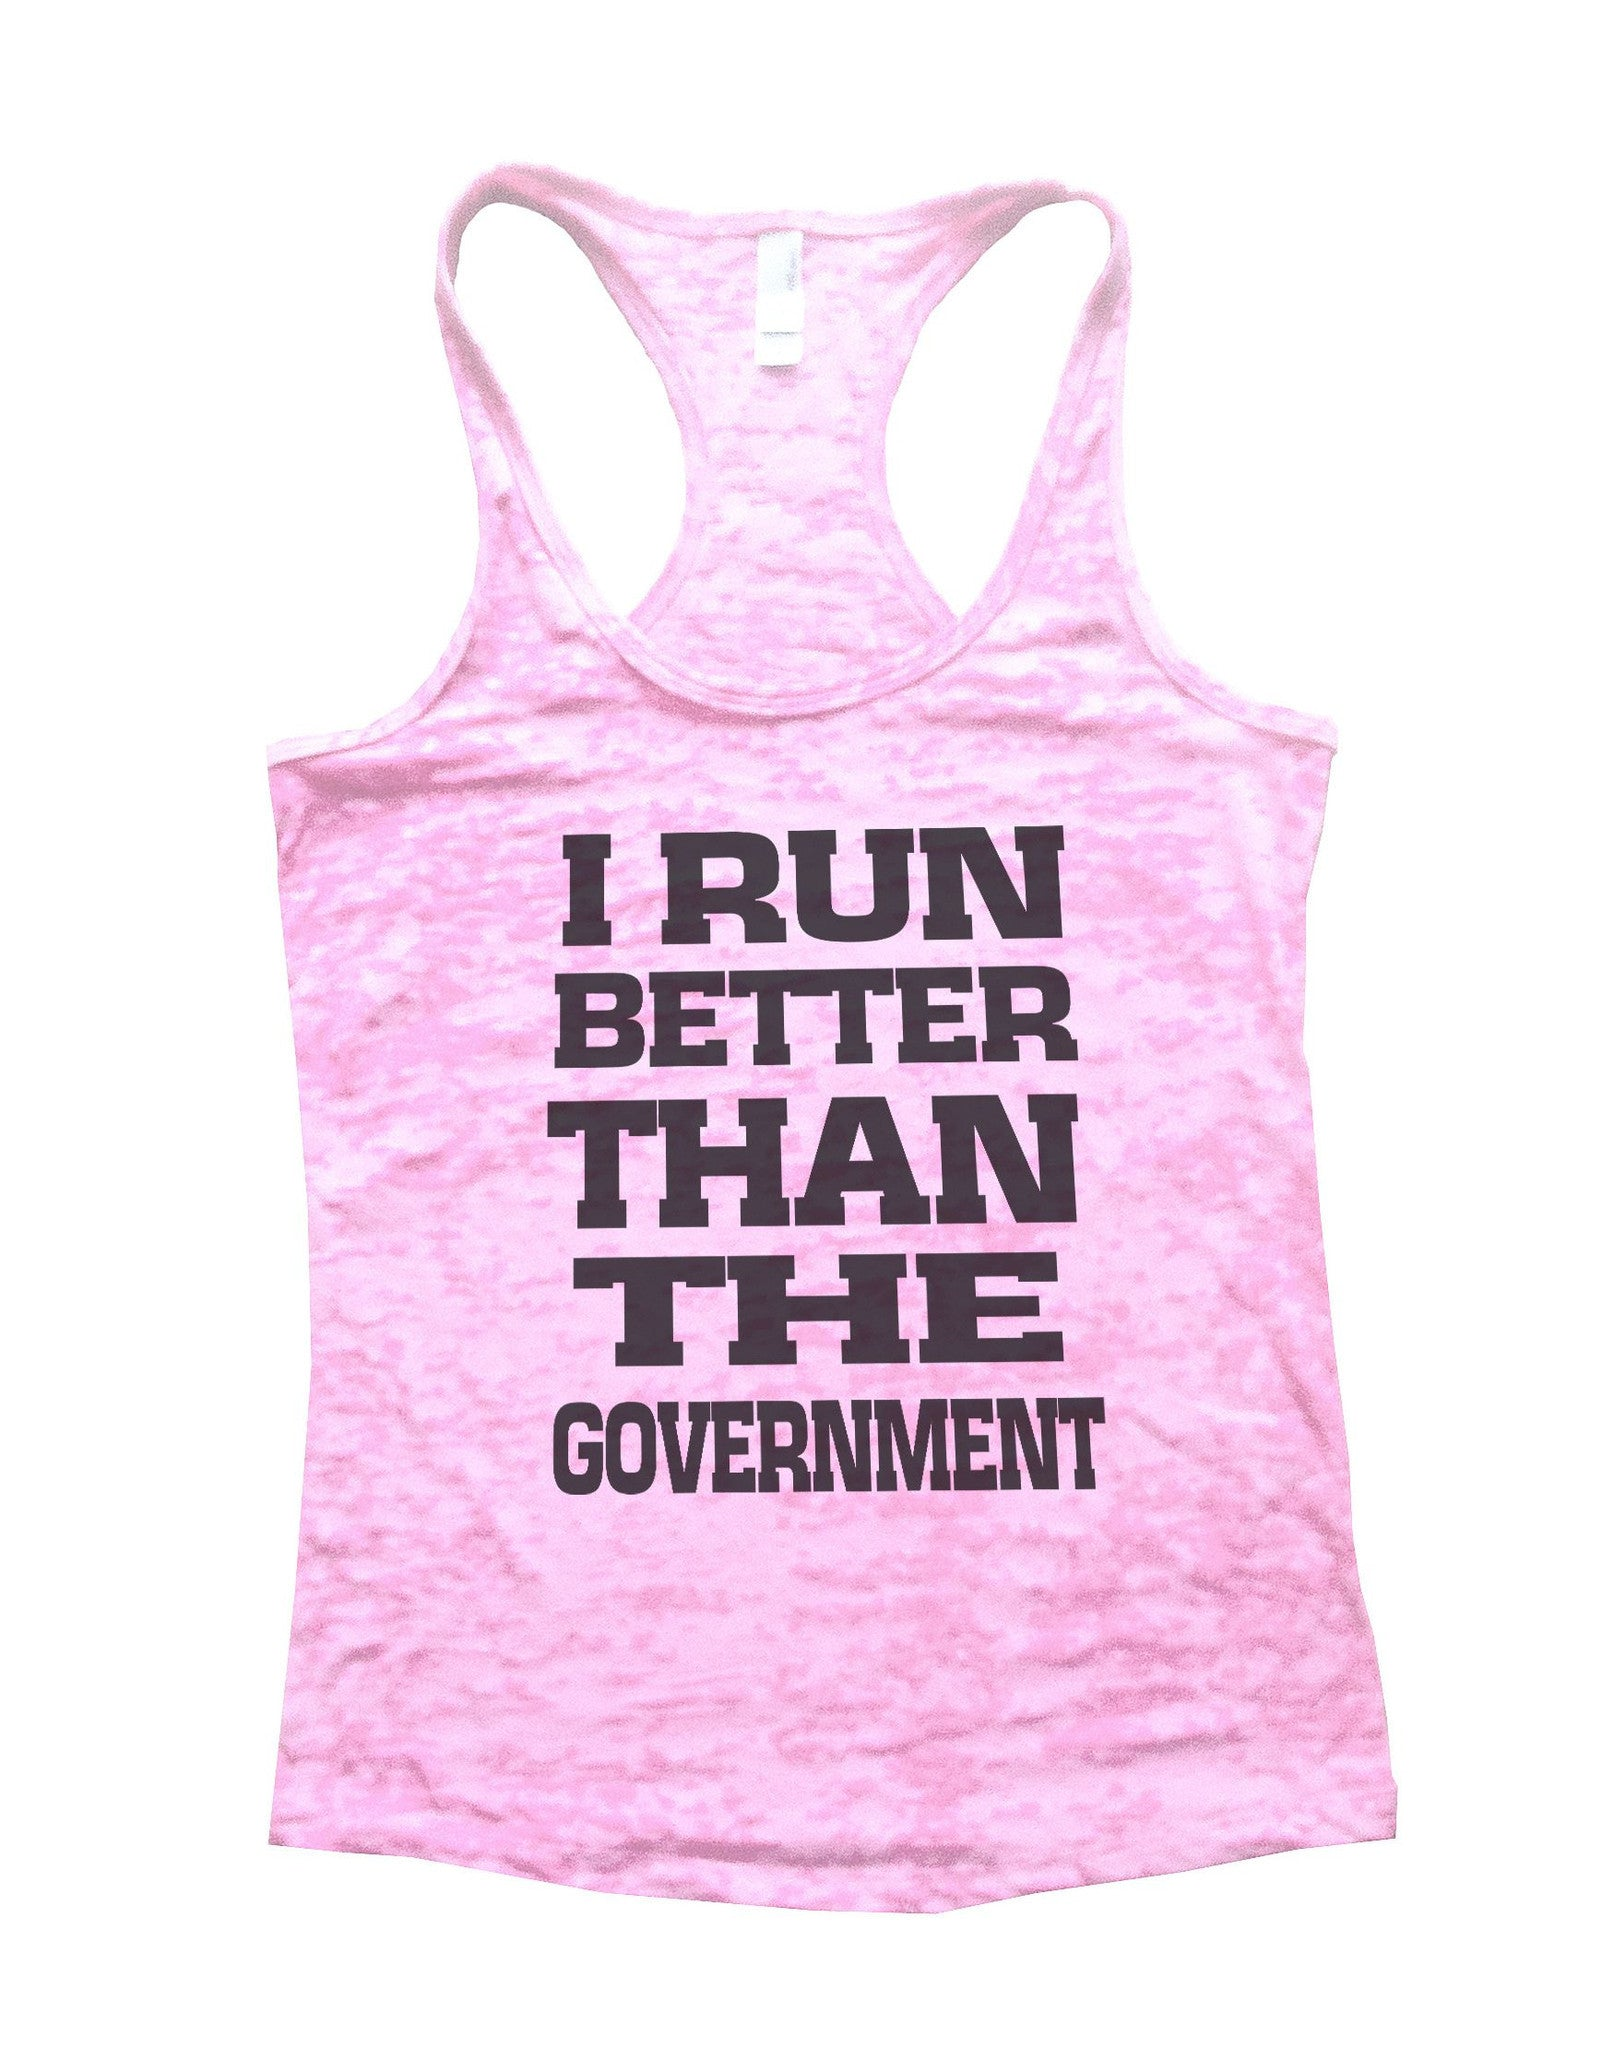 I Run Better Than The Government Burnout Tank Top By BurnoutTankTops.com - 763 - Funny Shirts Tank Tops Burnouts and Triblends  - 1